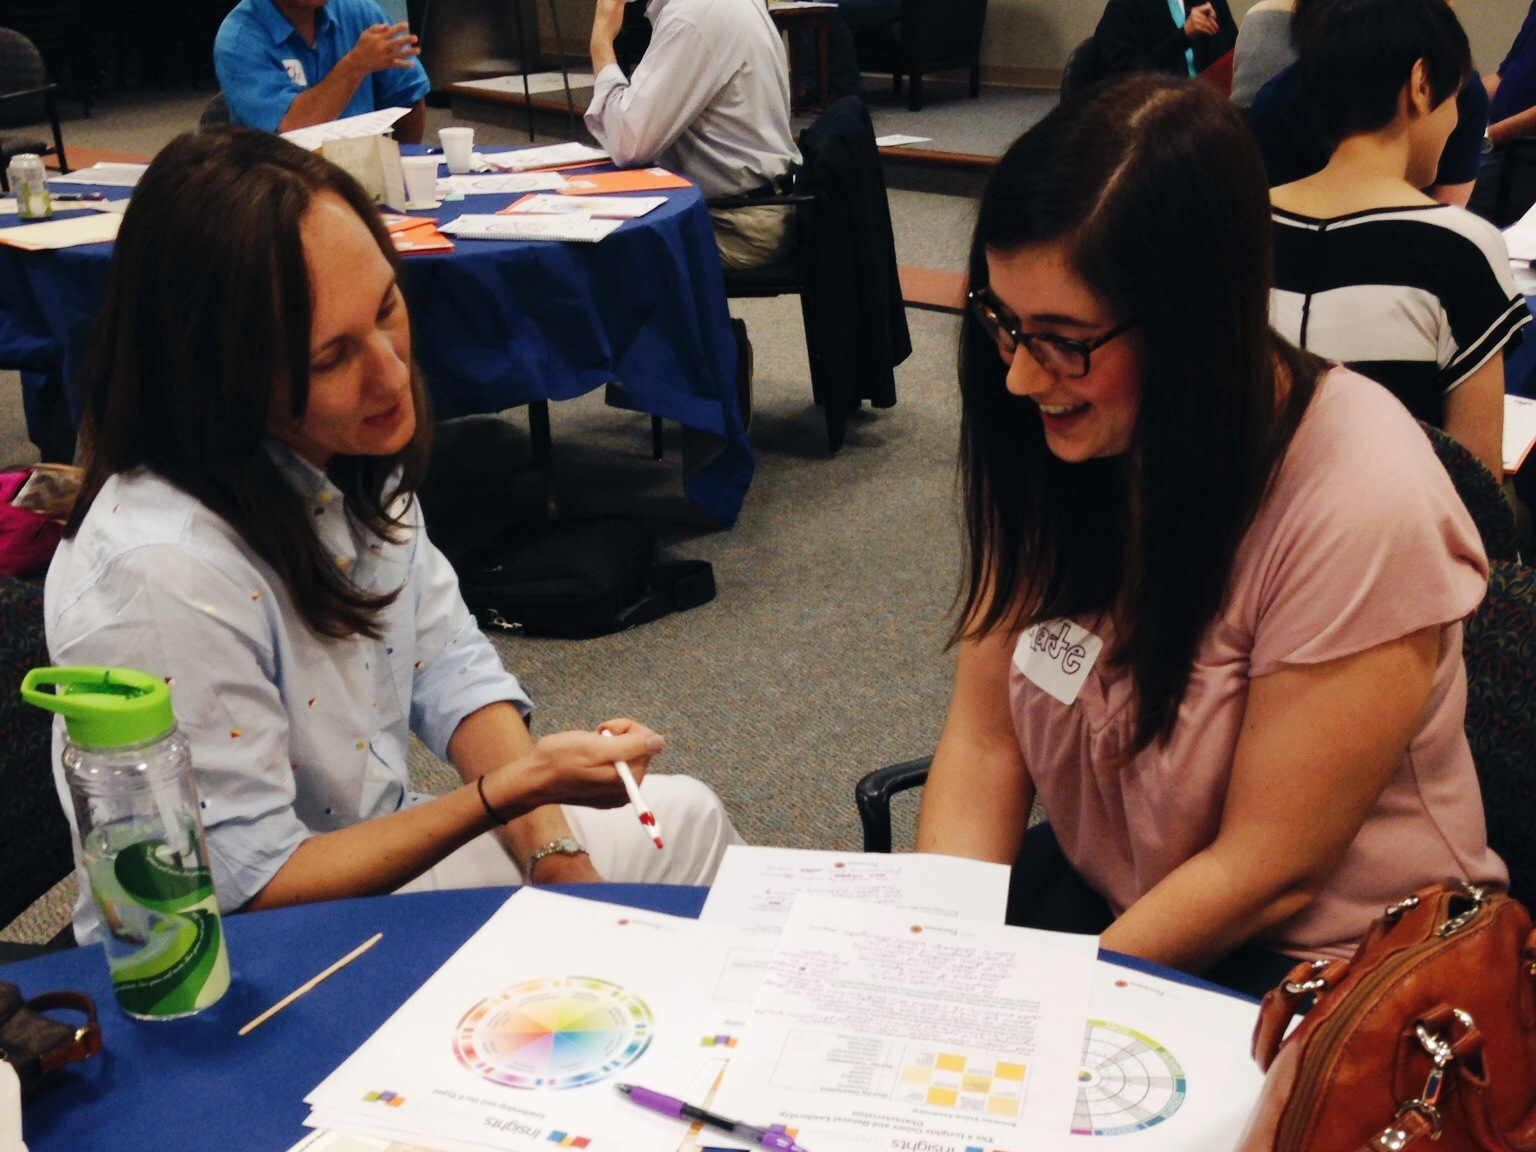 Alicia and Kate, who are opposite types on the color wheel, paired up to talk about their personal leadership styles.